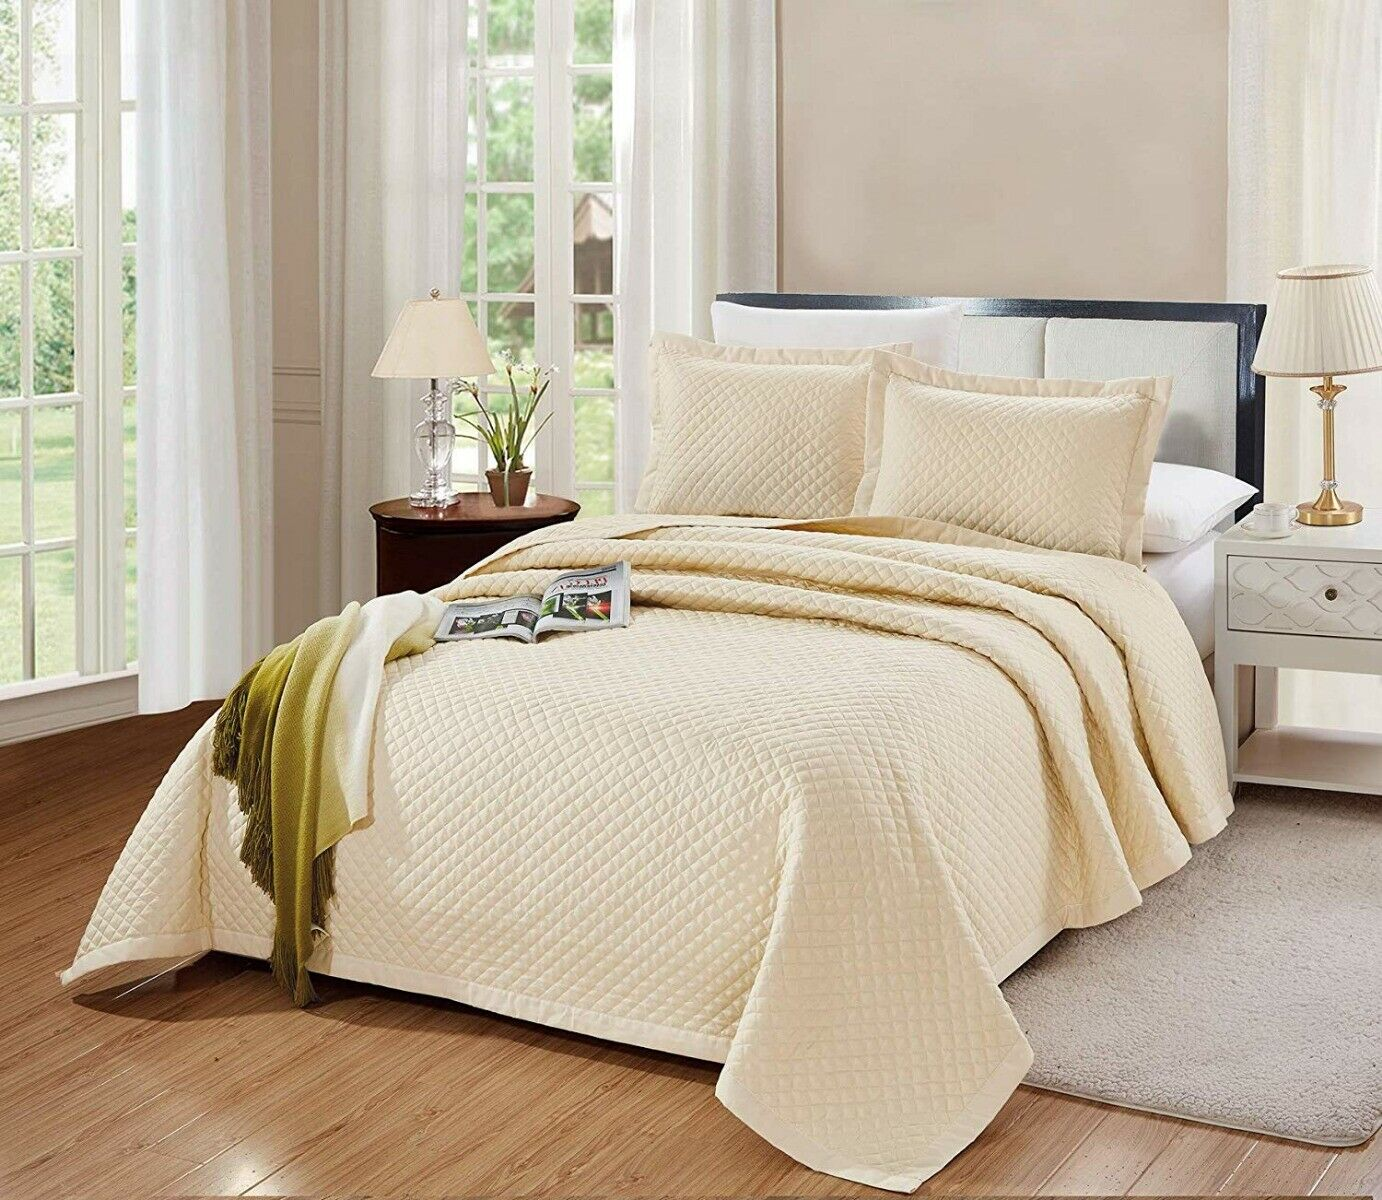 3PC Queen Full Size Naples Quilt Solid Light Ivory Bedspread Microfiber Coverlet